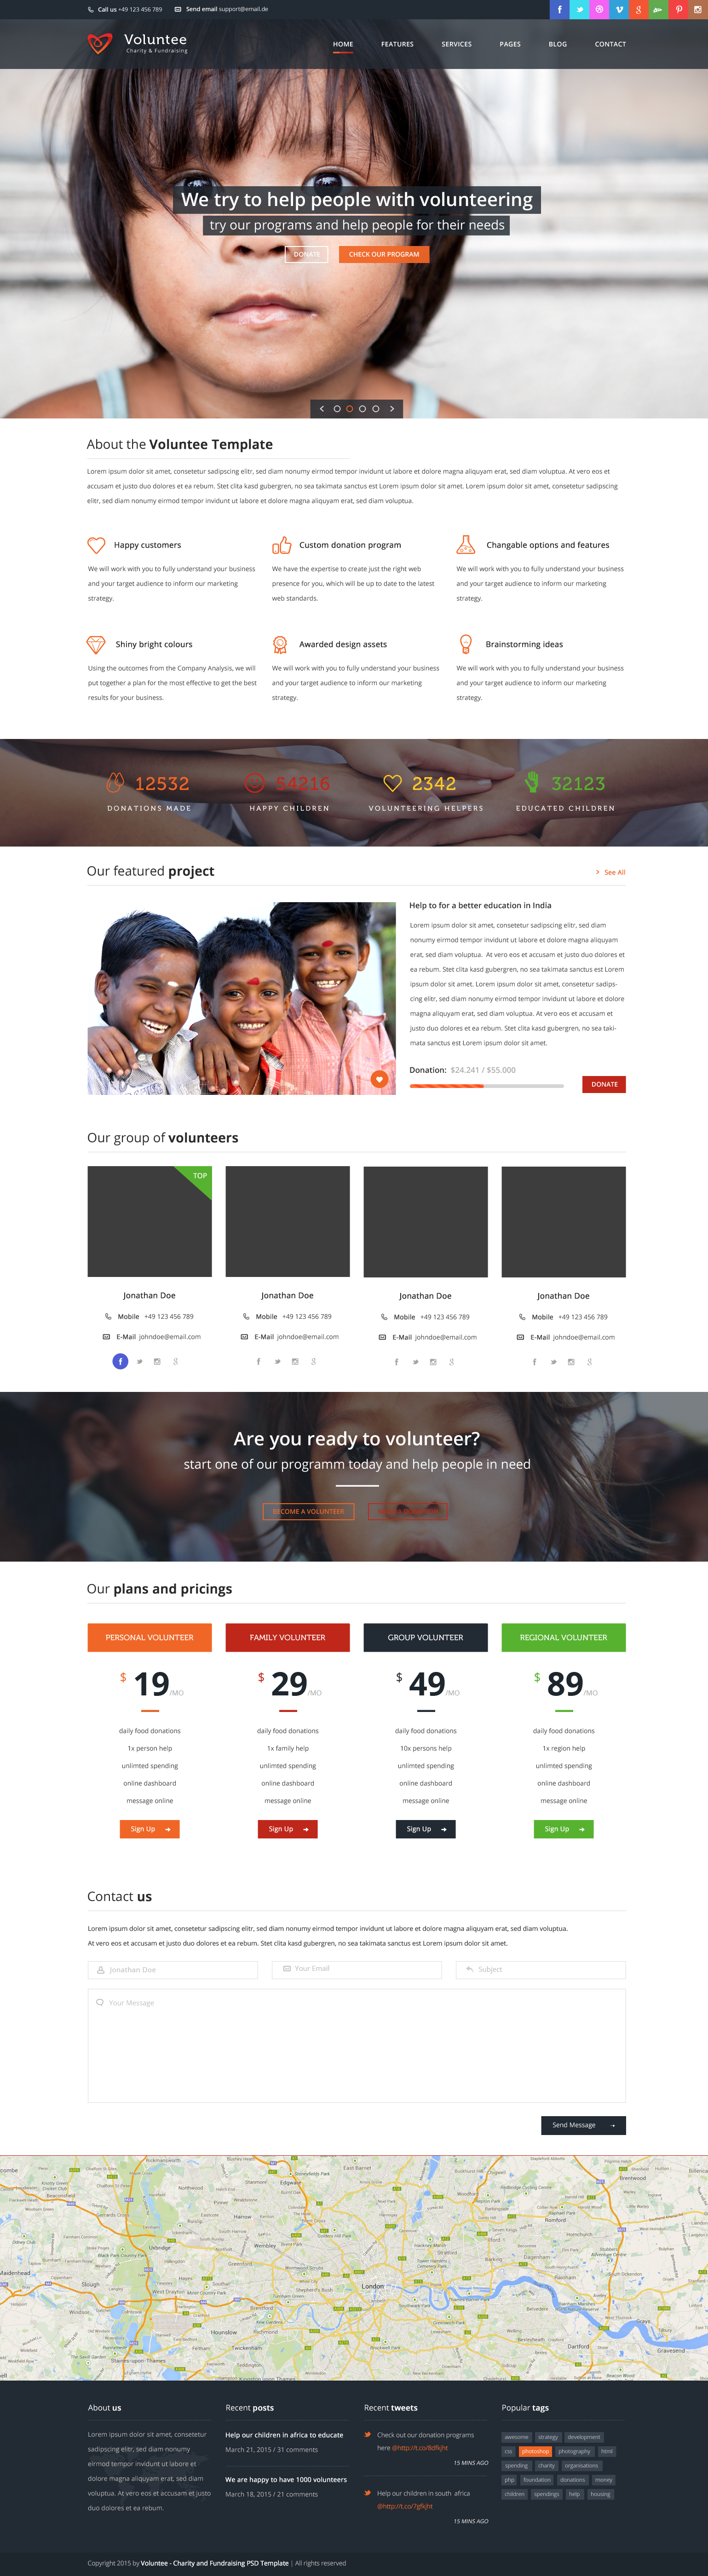 Volunteer - Charity/Fundraising WordPress Theme by template_path ...